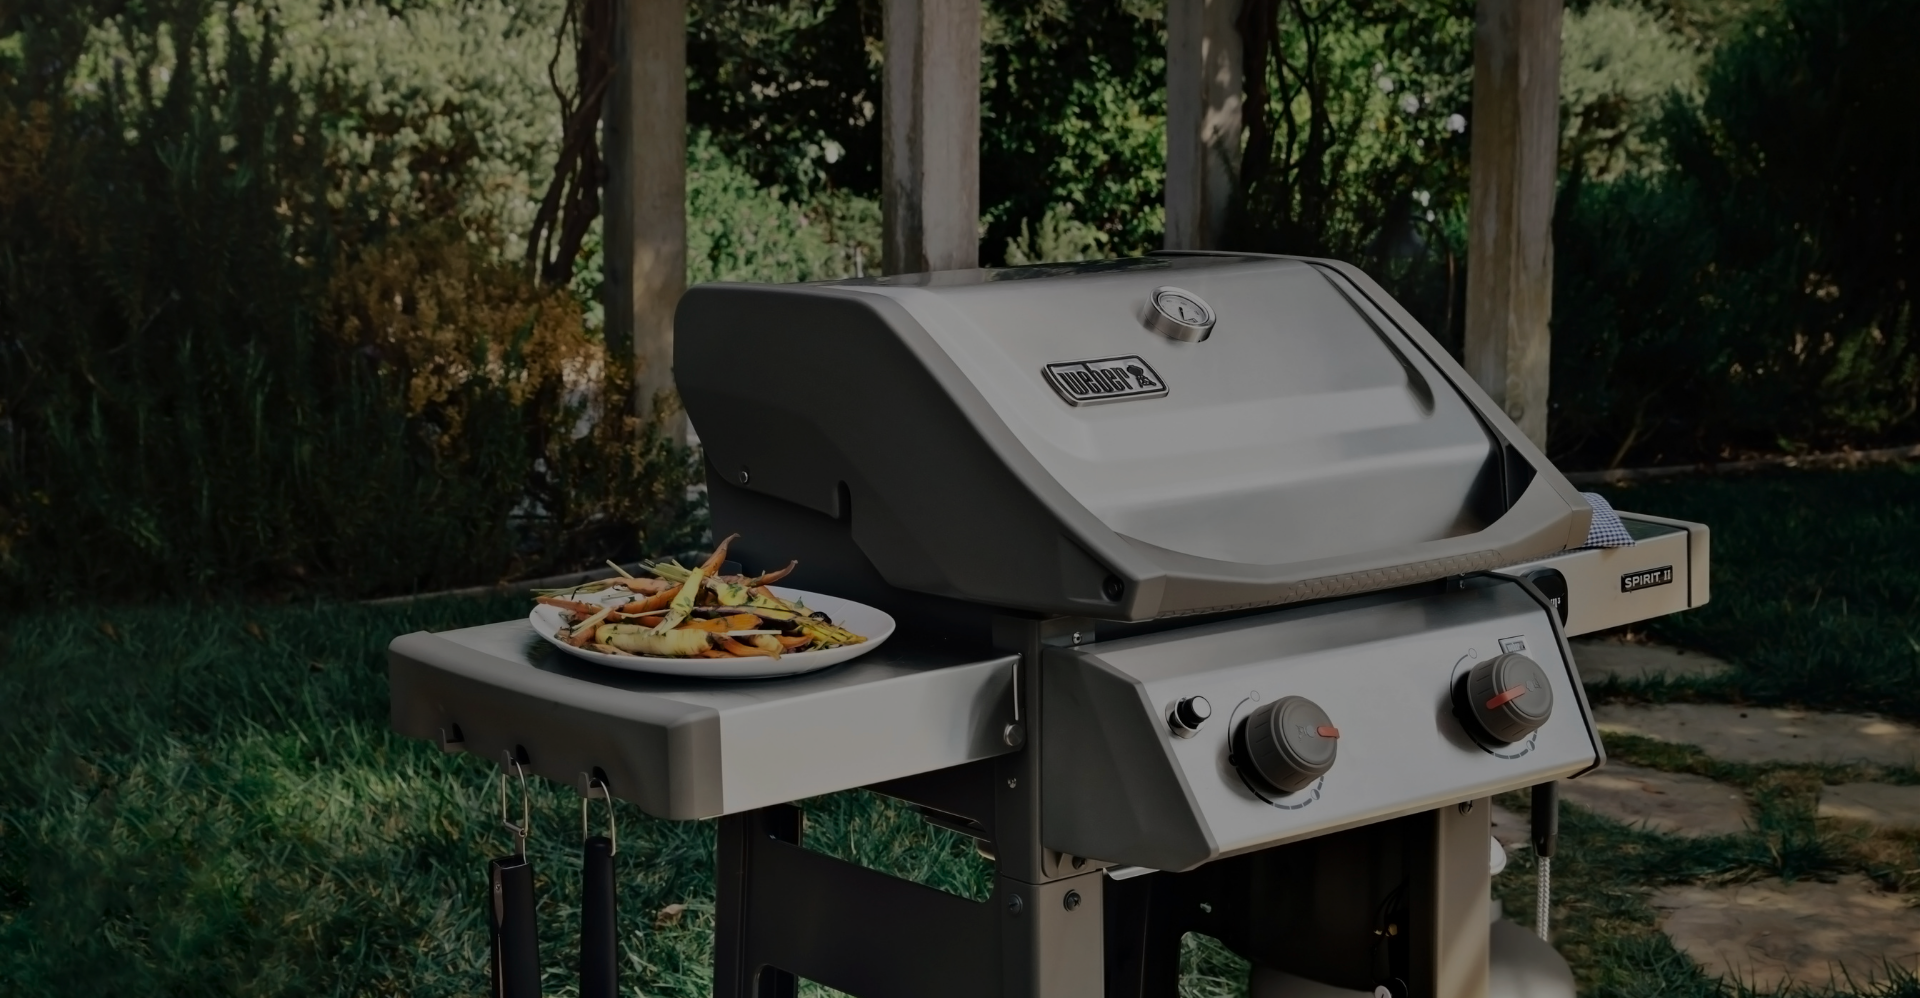 Weber Elektrogrill Jumbo : Weber grills by grillers for grillers weber